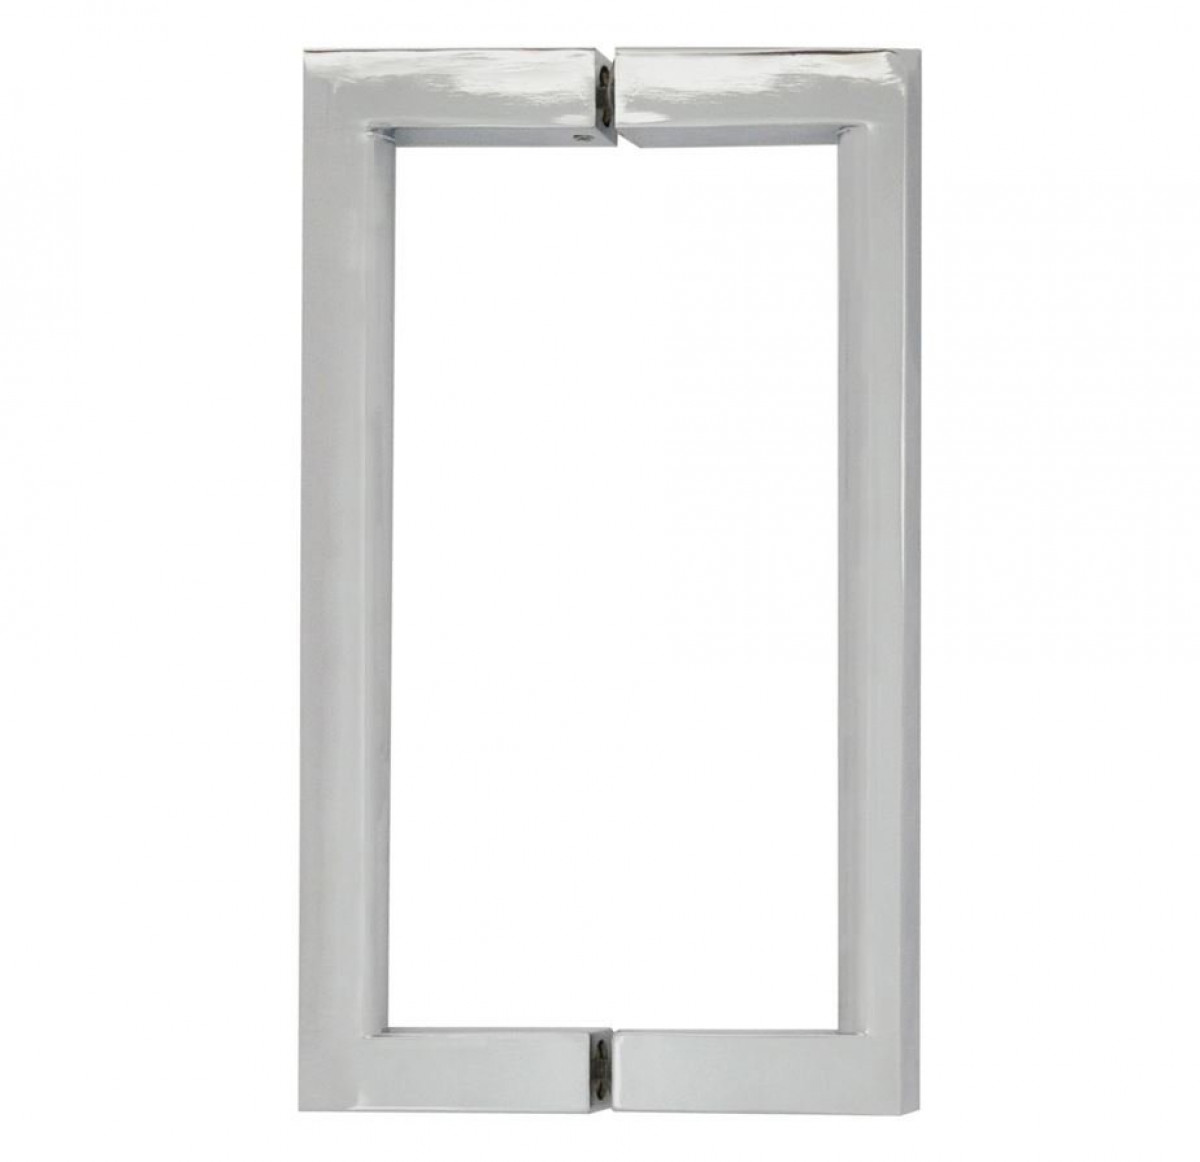 Roman Decem Sliding Door 1200 X 900mm Corner Fitting With